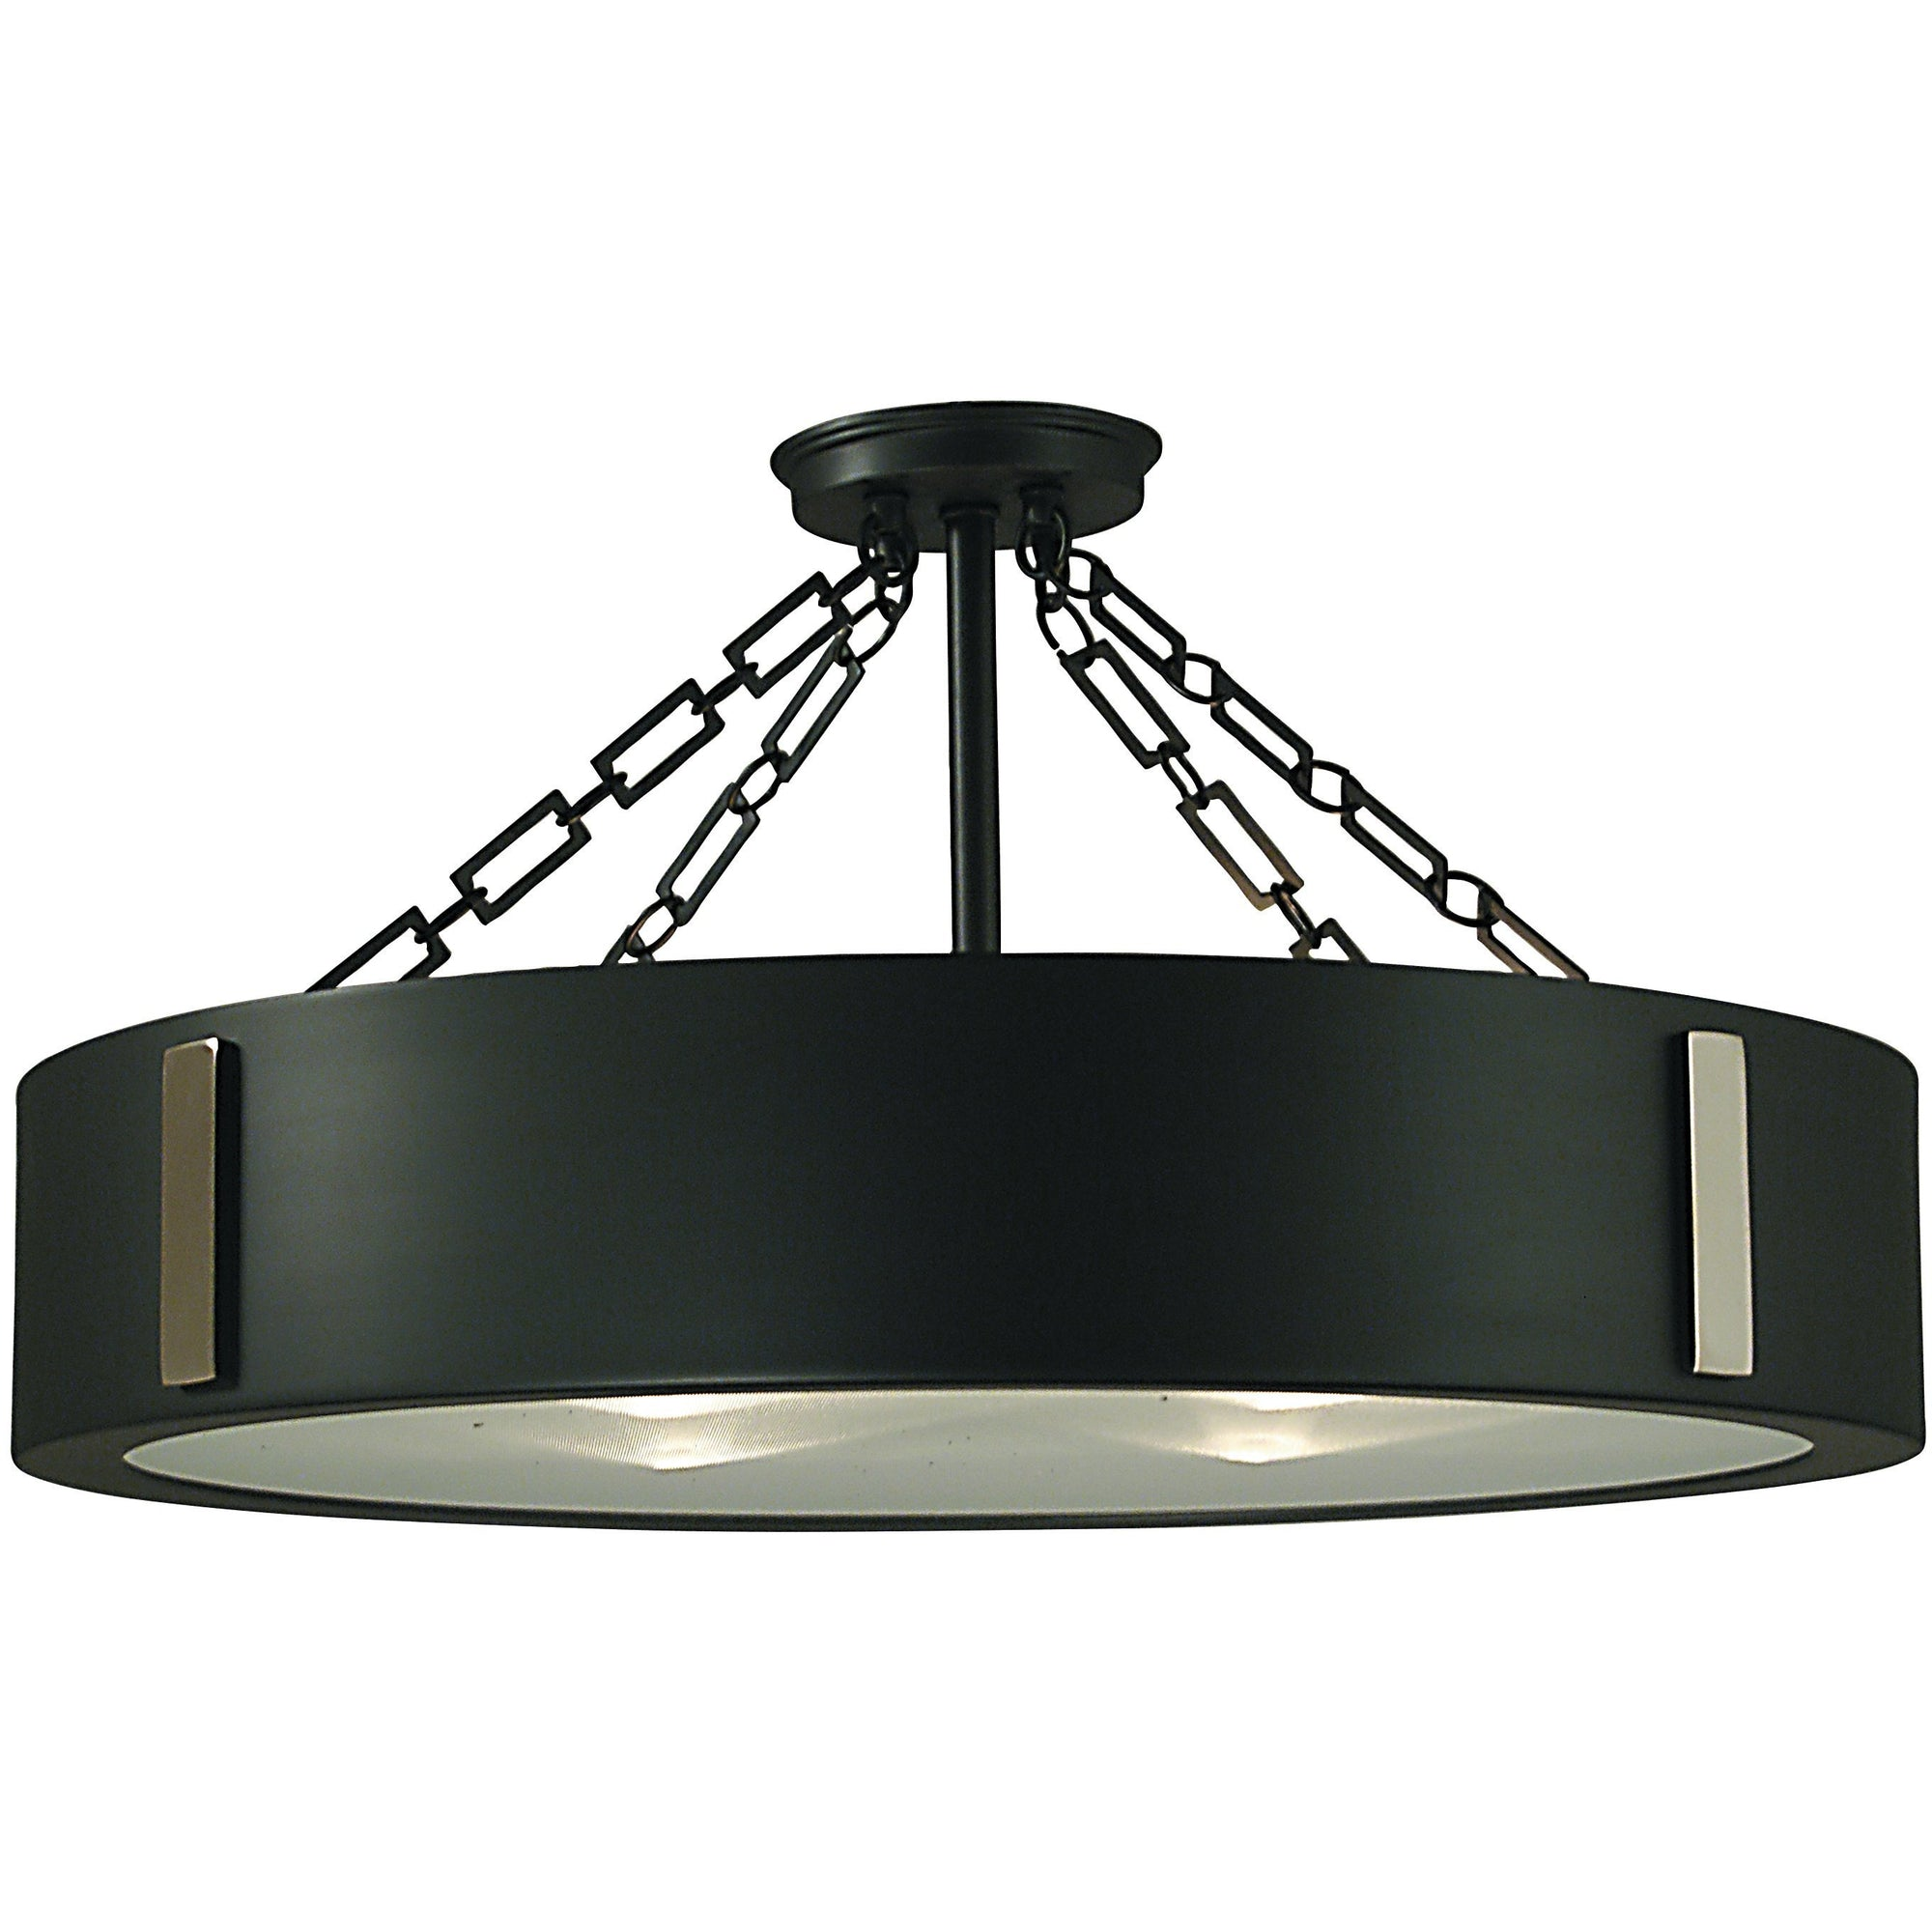 Framburg Flush & Semi Flush Mounts Charcoal with Polished Nickel Accents 4-Light Charcoal/Polished Nickel Oracle Flush / Semi-Flush Mount by Framburg 2416